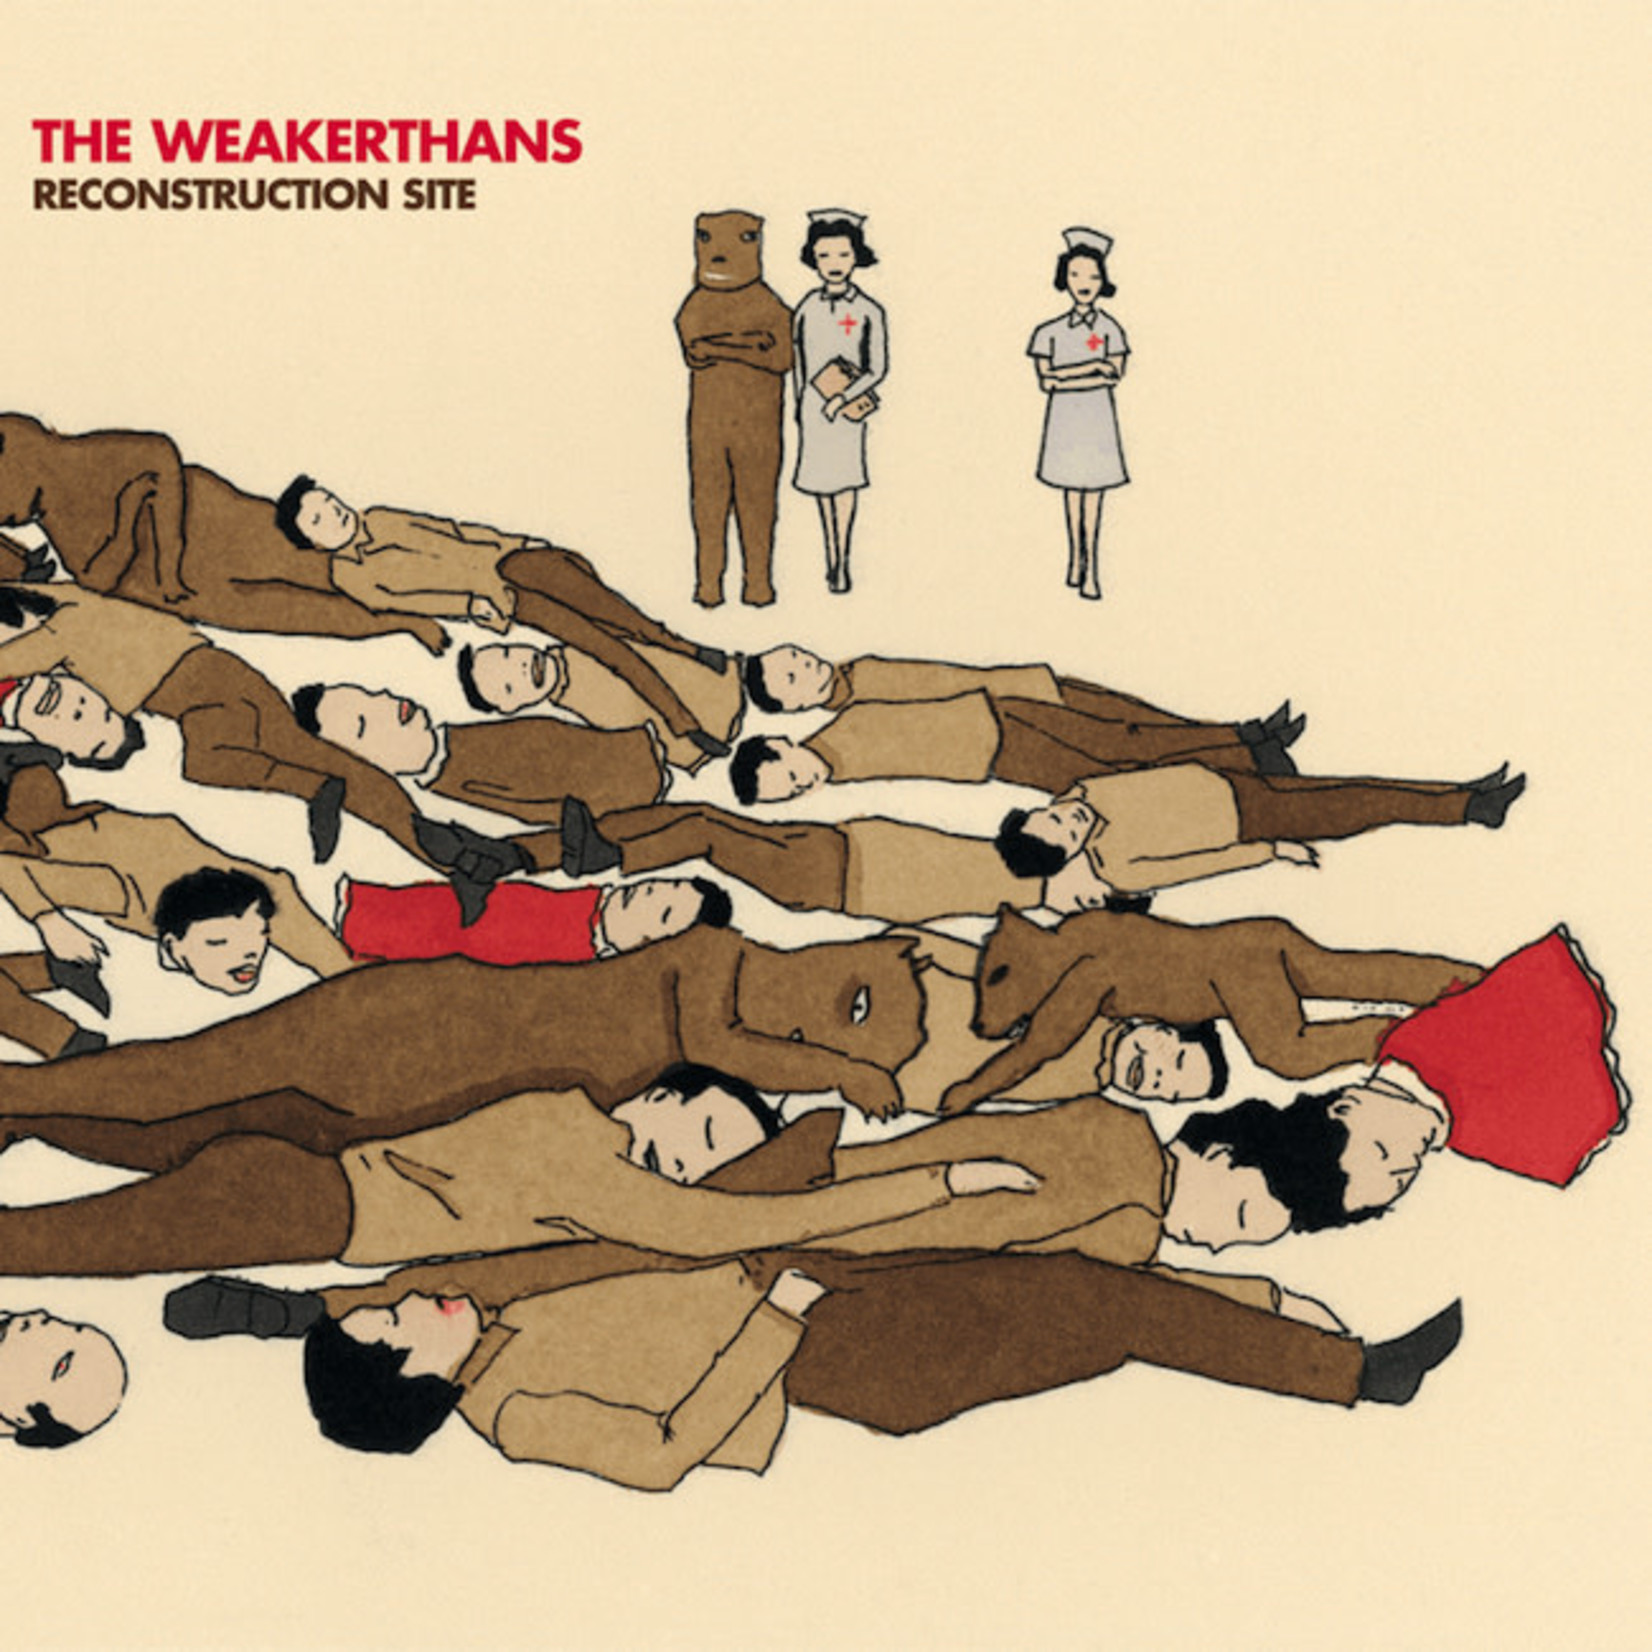 [New] Weakerthans: Reconstruction Site